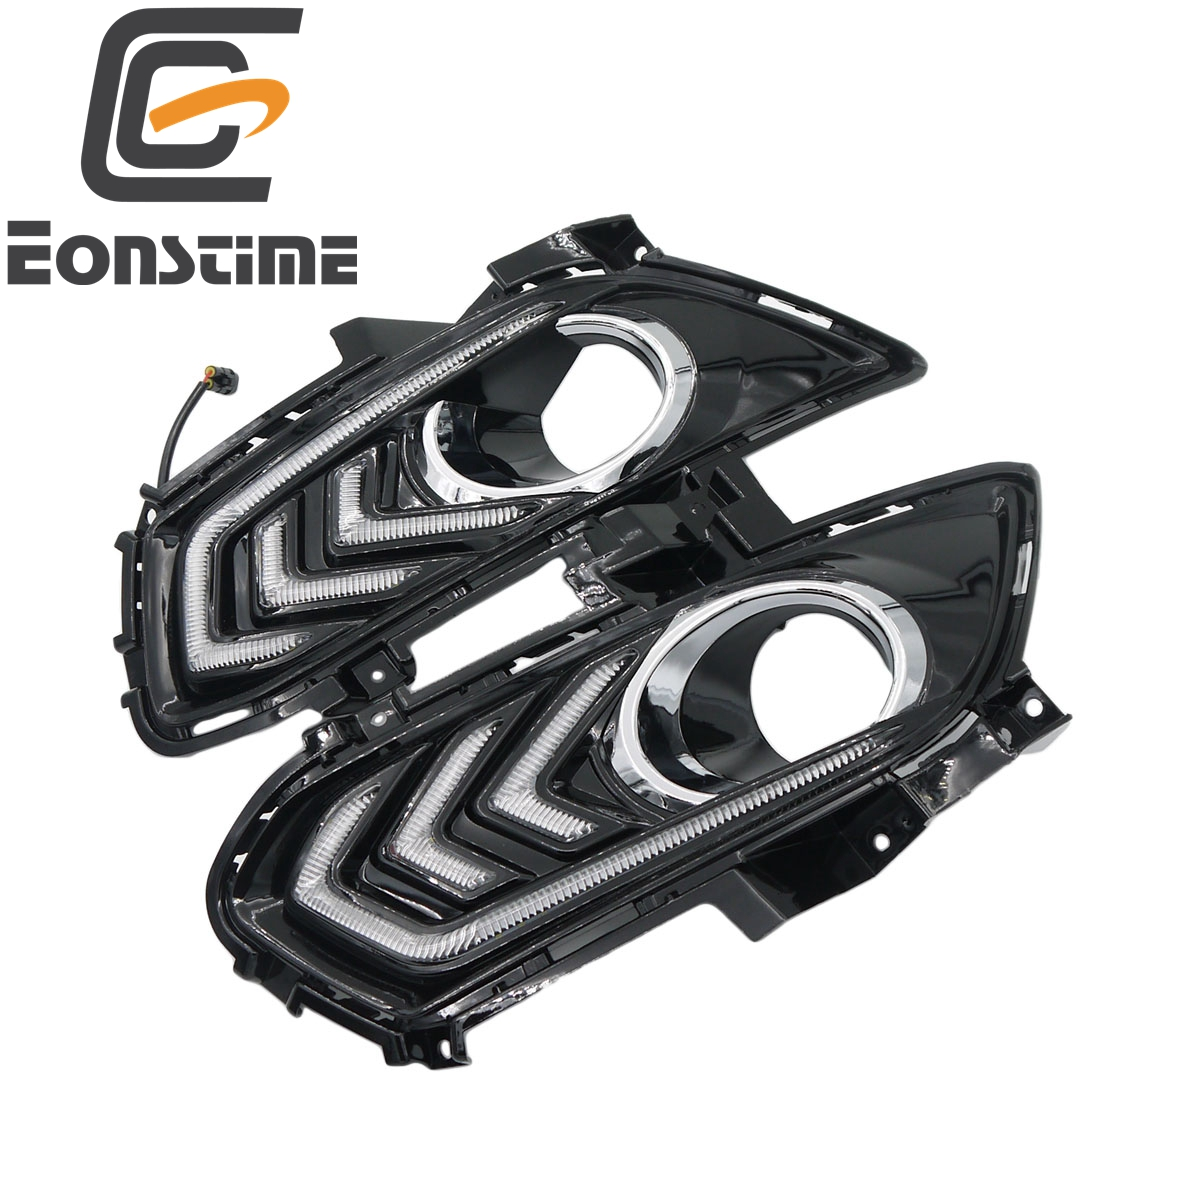 Eonstime set 12V Car DRL LED Daytime Running Light Fog lights For Ford Mondeo Fusion 2013 2014 2015 2016 Signal light Styling eonstime 2pcs 12v car drl led daytime running light fog lights for ford mondeo fusion 2013 2014 2015 2016 car styling